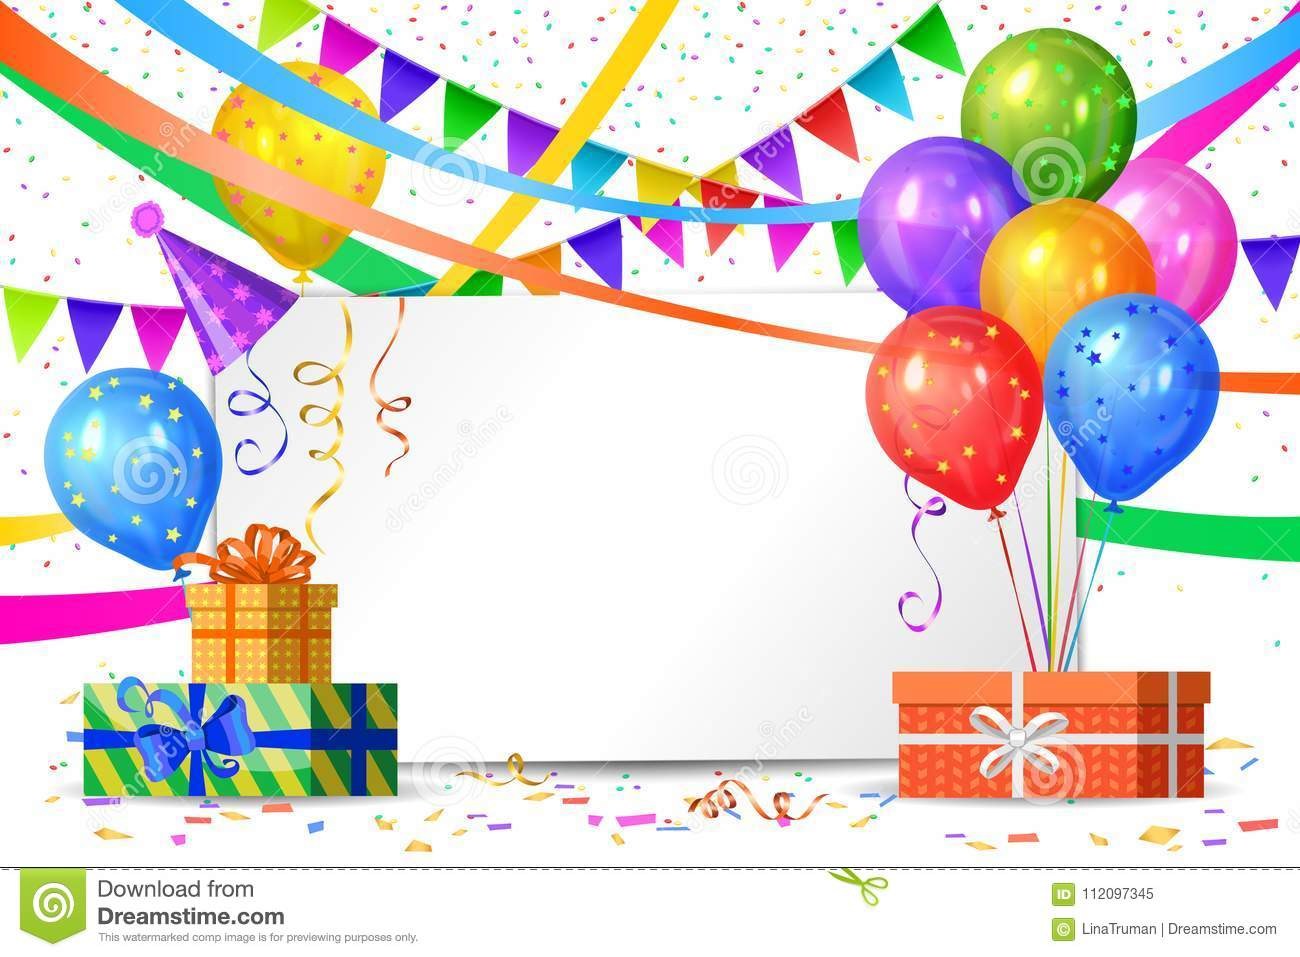 Happy Birthday Design Realistic Colorful Helium Balloons Gift Boxes Flags Garlands And White Sheet Party Decoration Frame For Anniversary